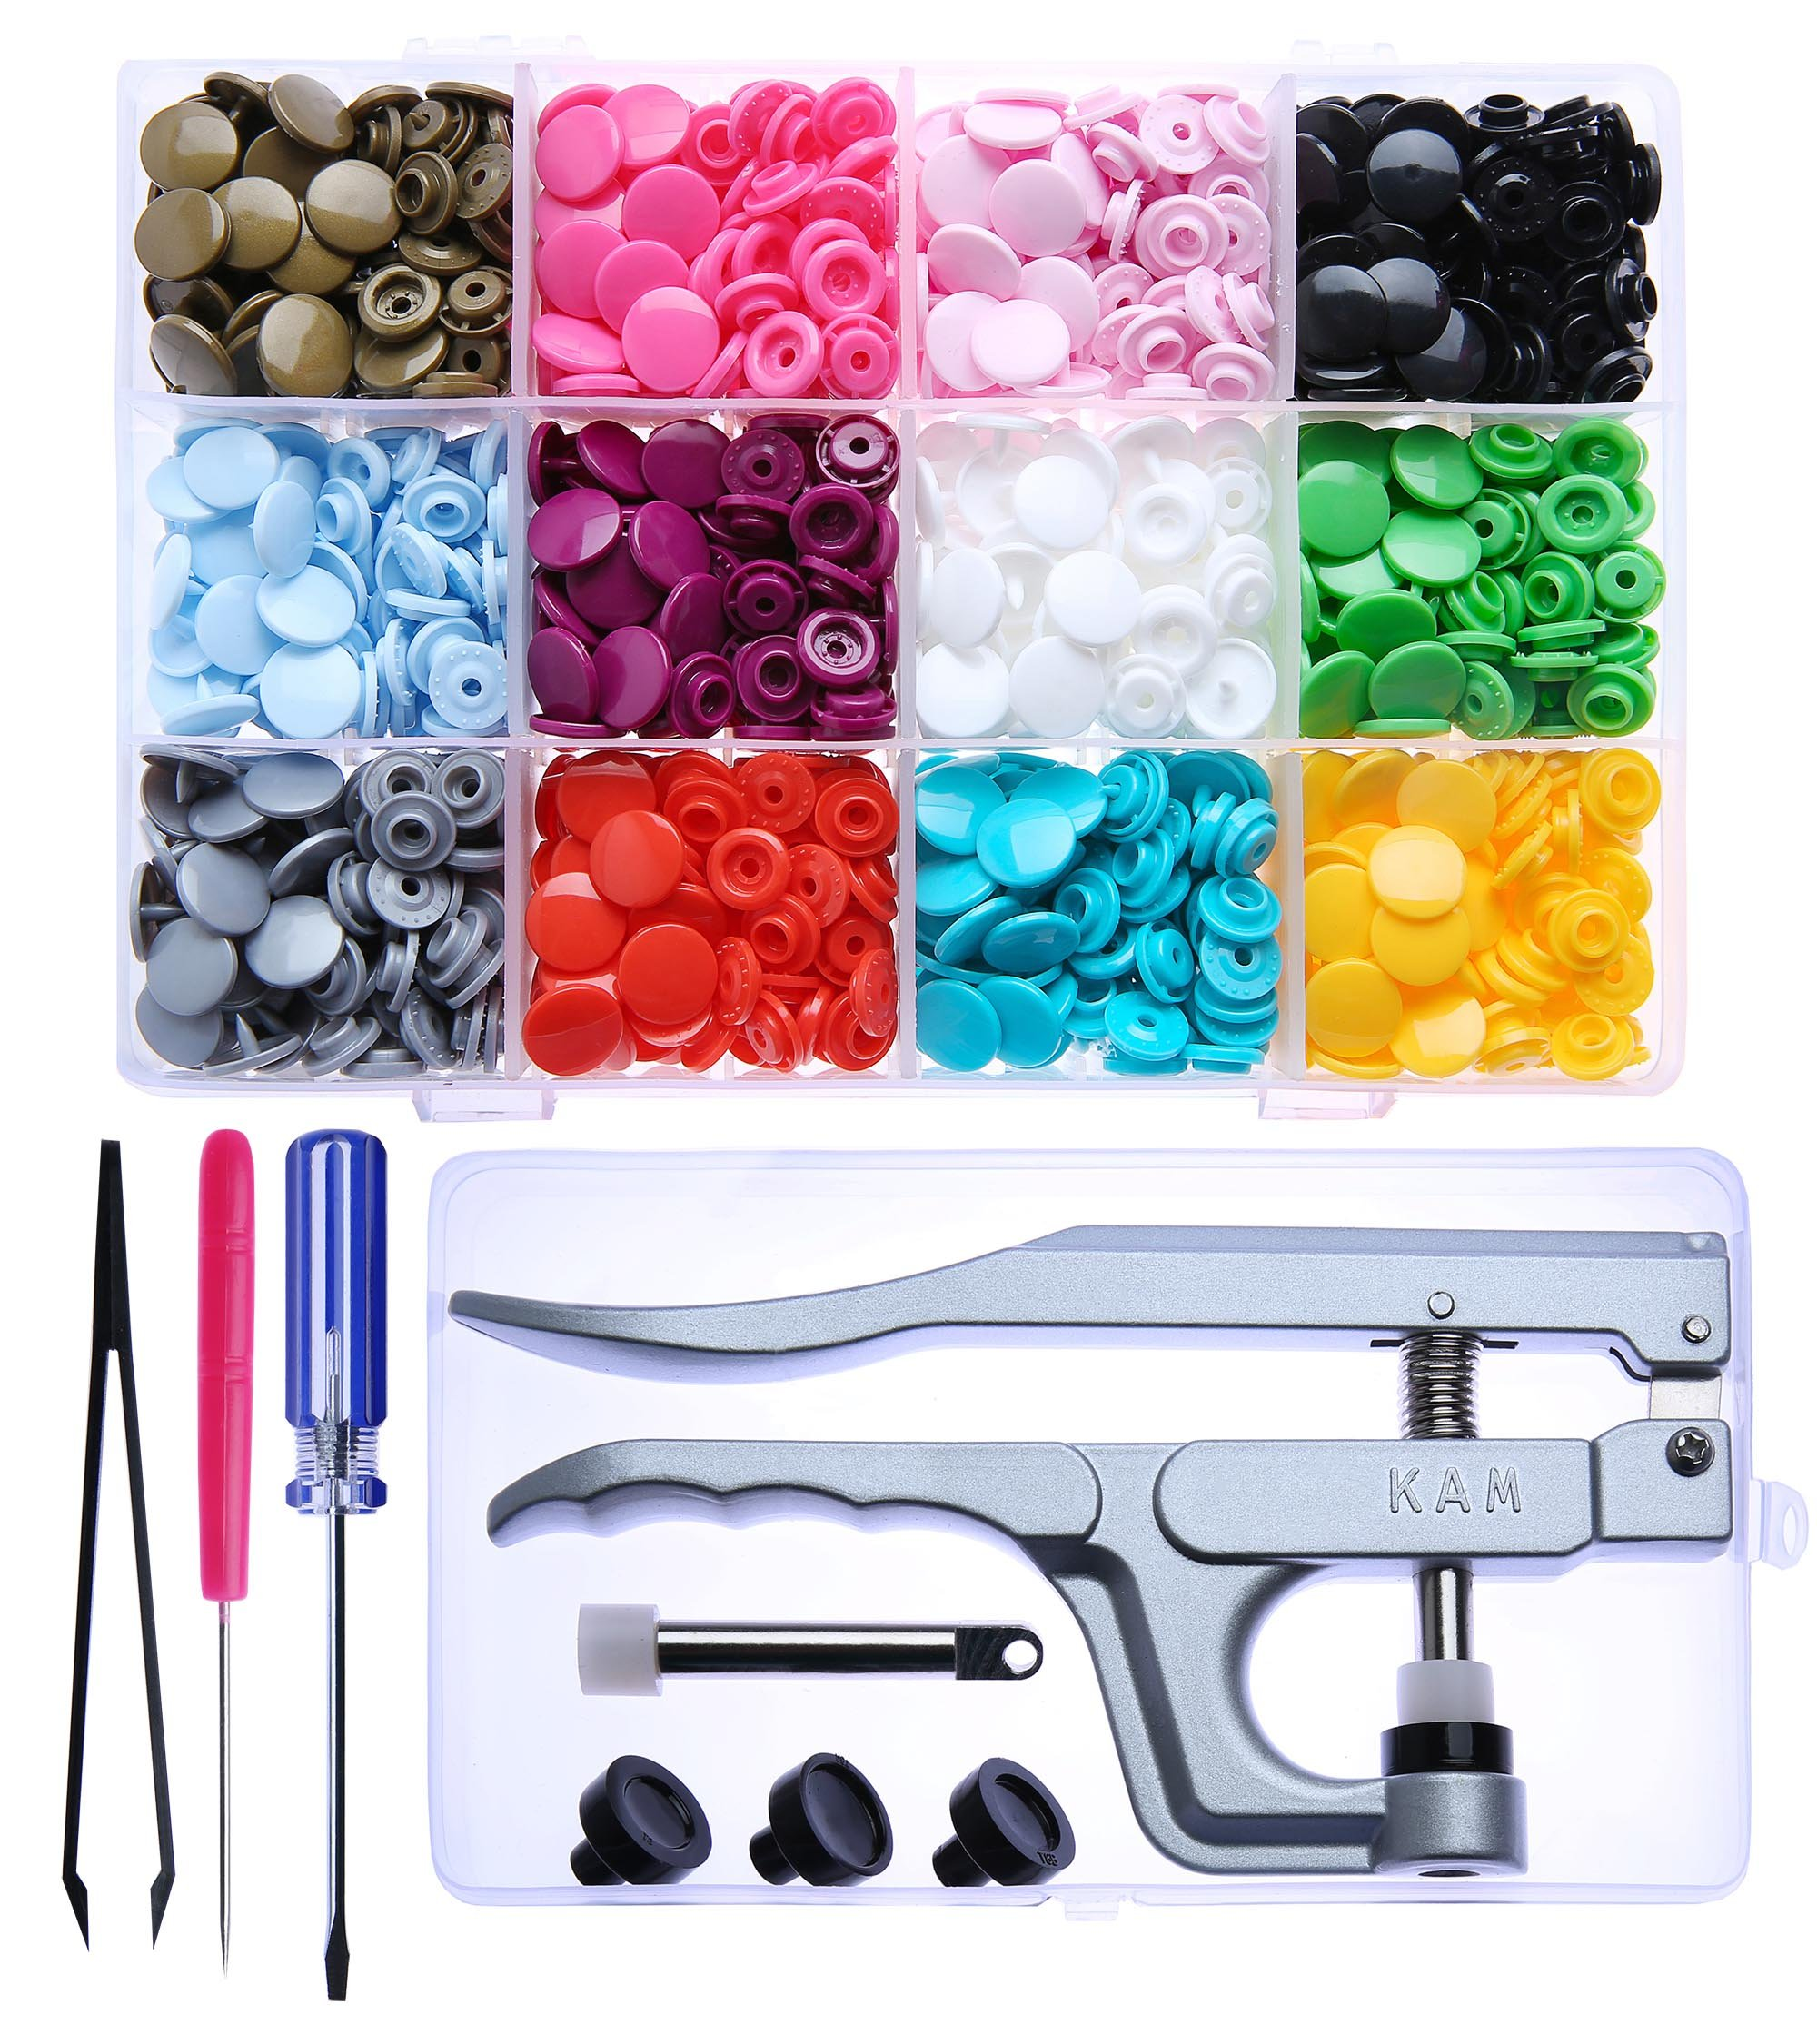 KAM Snaps Starter Fasteners Kit -360pcs Snap Size 20 + Pliers for Crafts Clothing by Seawhisper